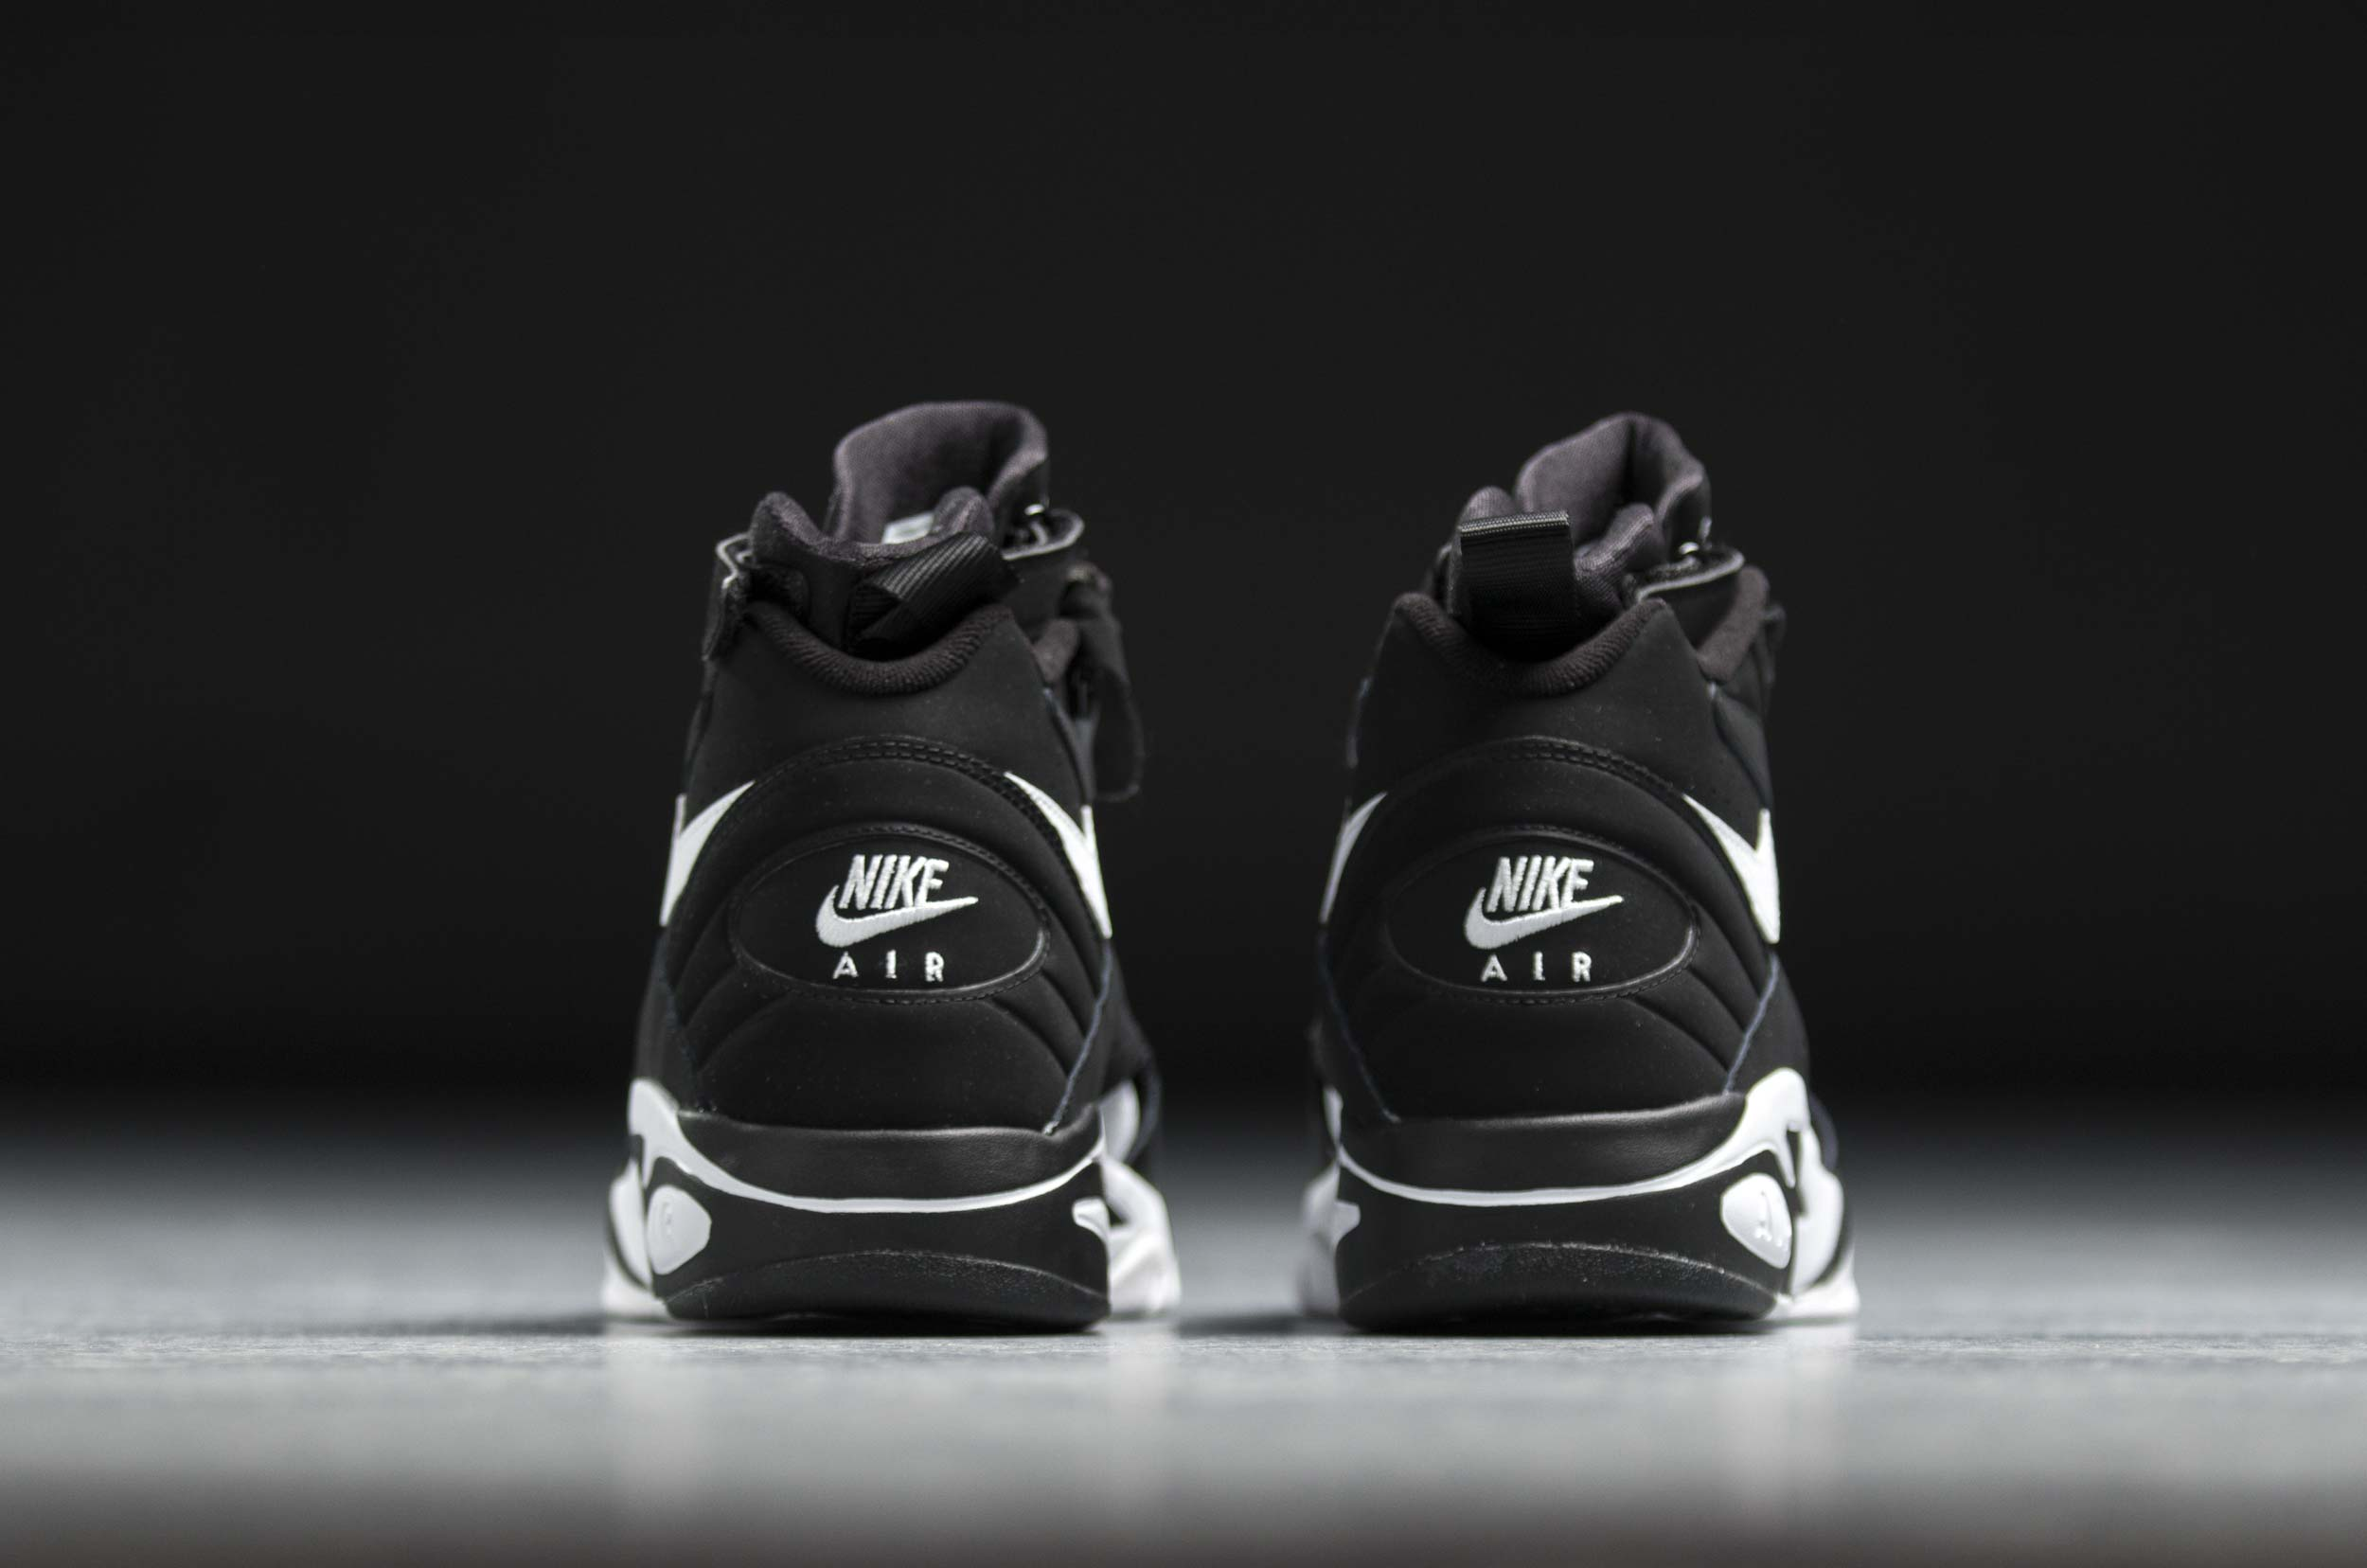 NIKE AIR MAESTRO II LTD AH8511-001 Μαύρο